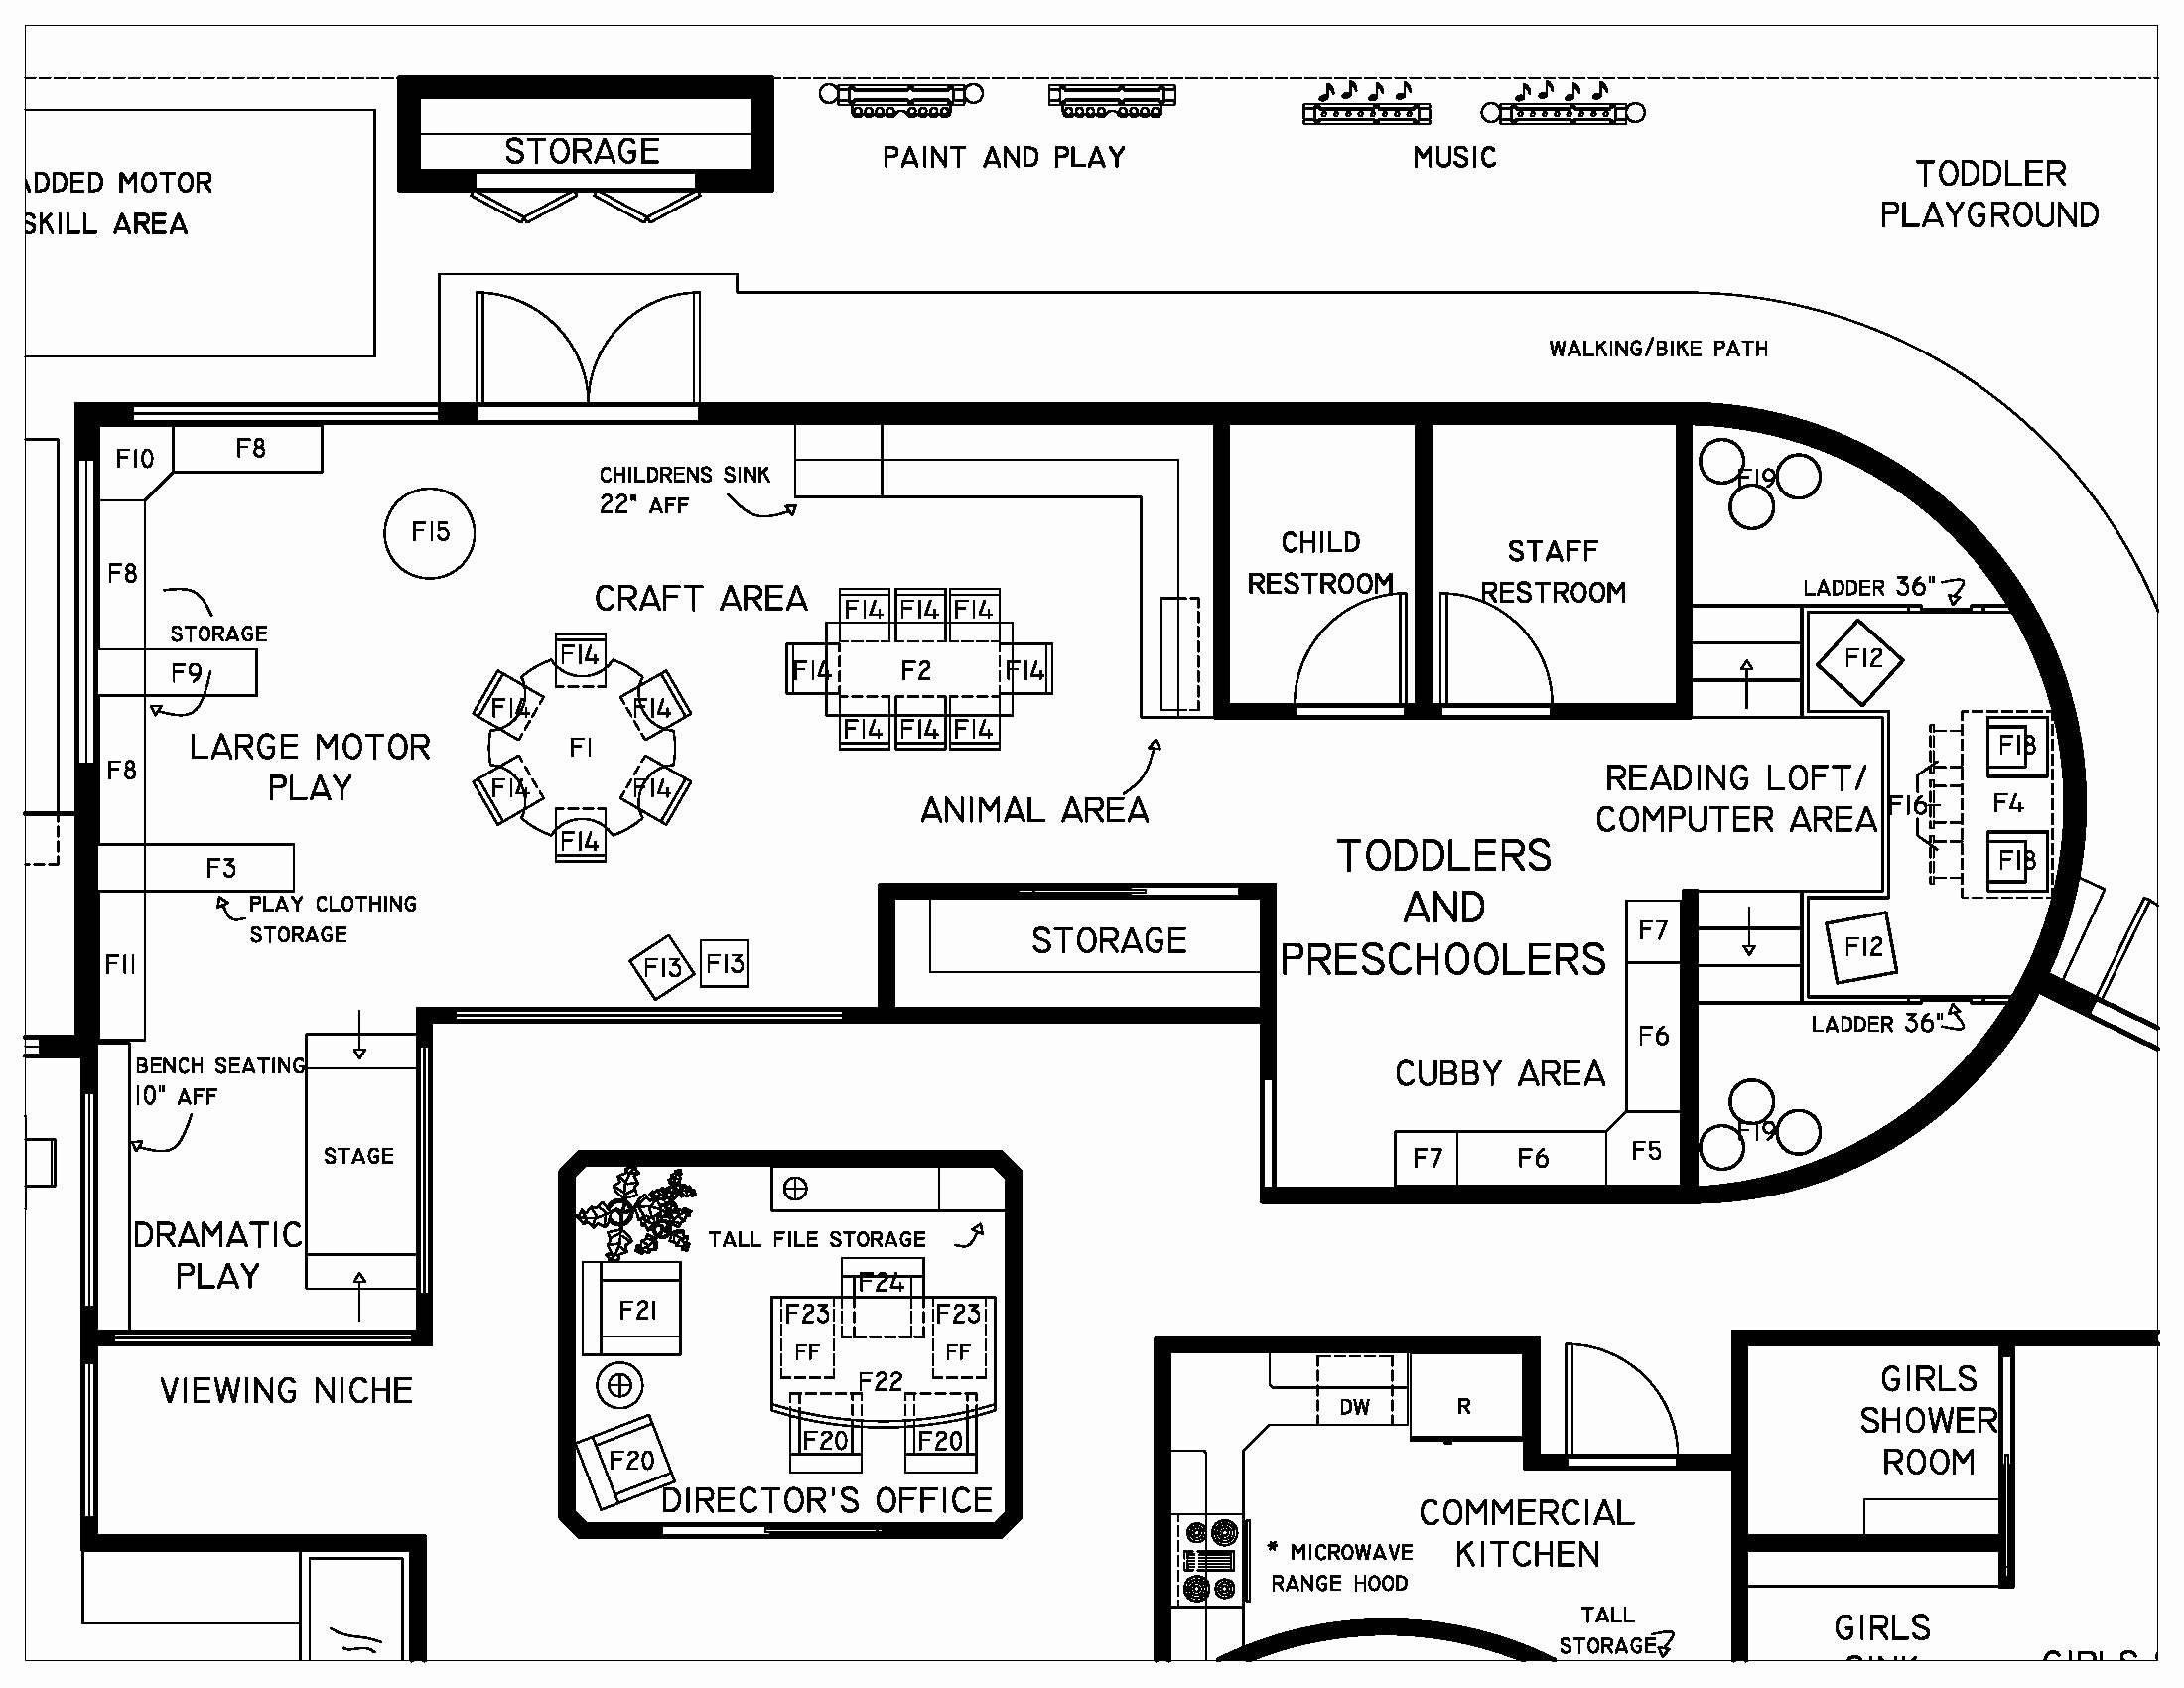 best wiring diagram software Download-Drawing A Wiring Diagram software Refrence Floor Plan Mansion Floor Plan software Fresh House Plan S 6-g